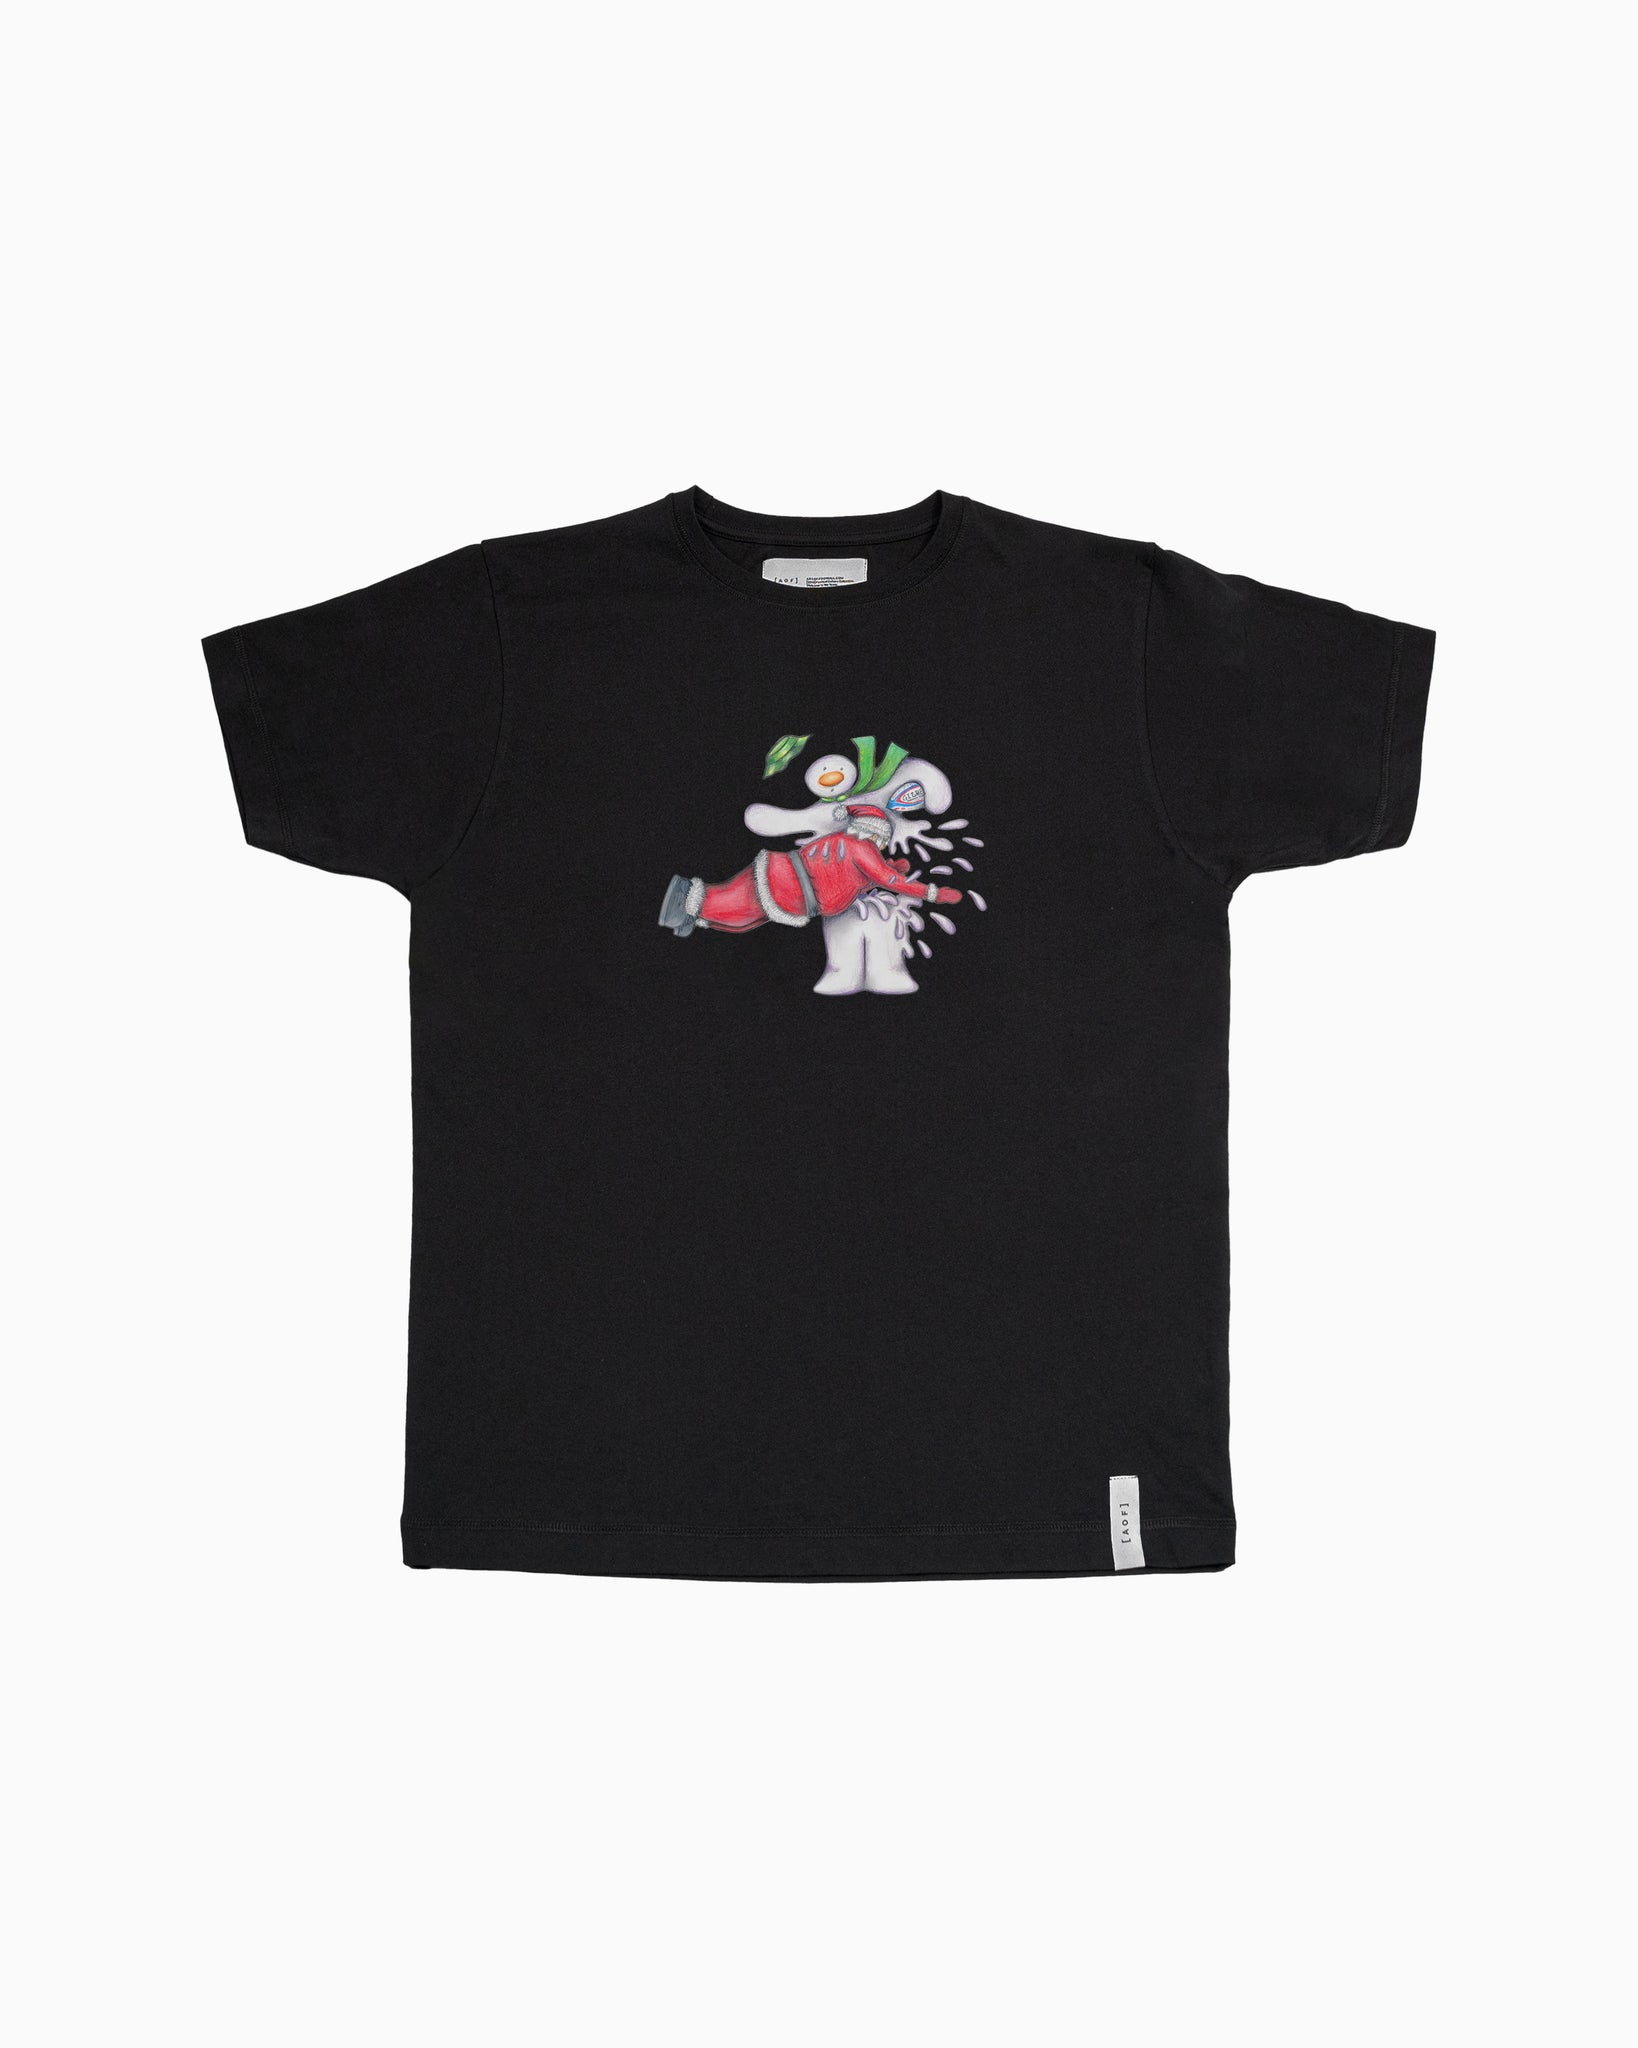 The Christmas Hit - Tee or Sweat